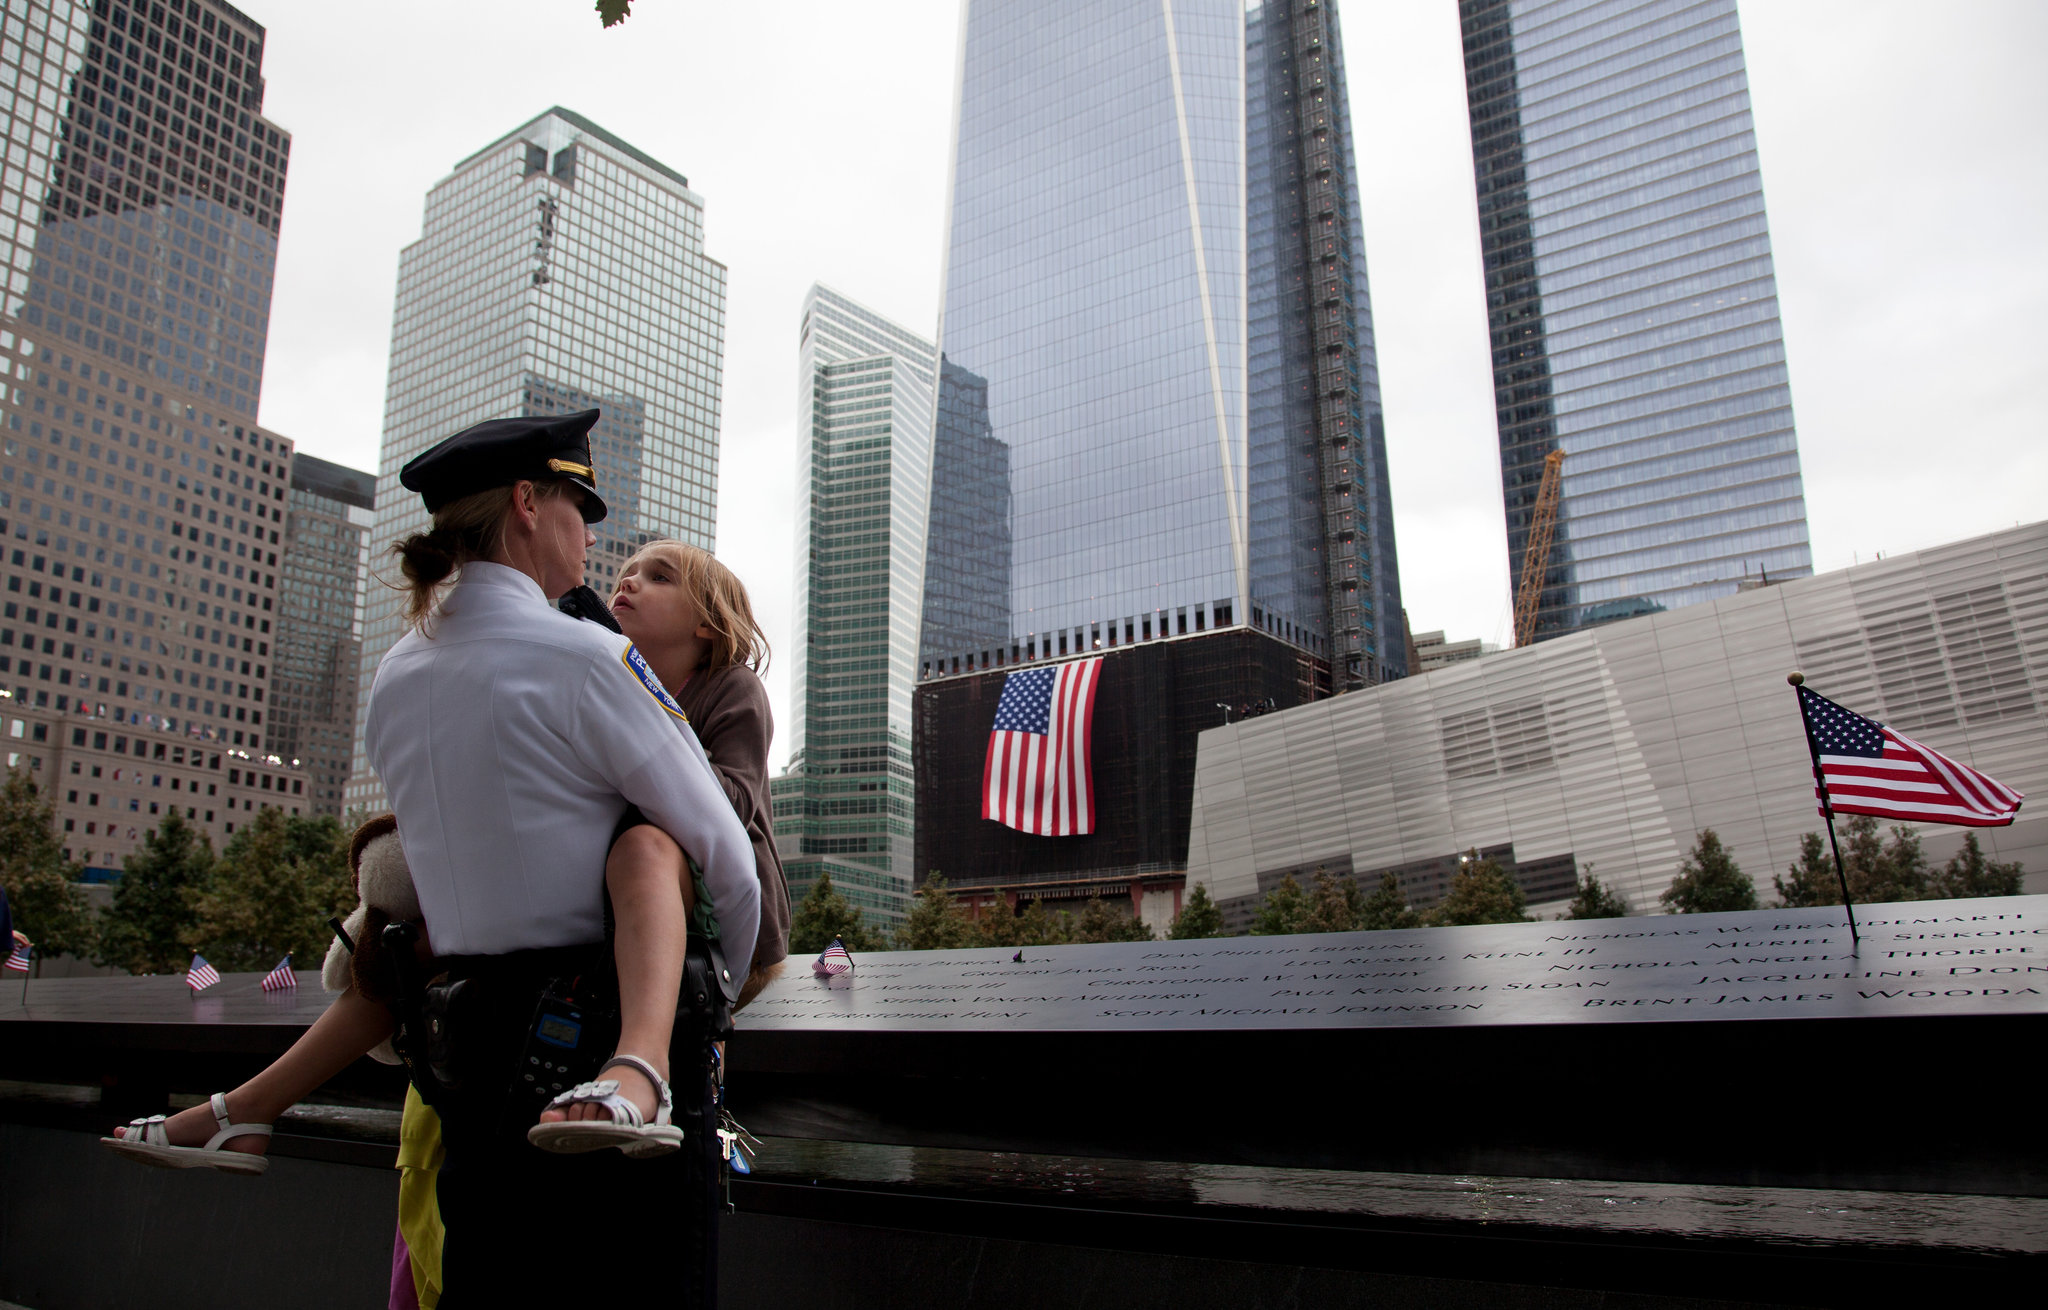 Resources | Teaching and Learning About 9/11 With The New York Times